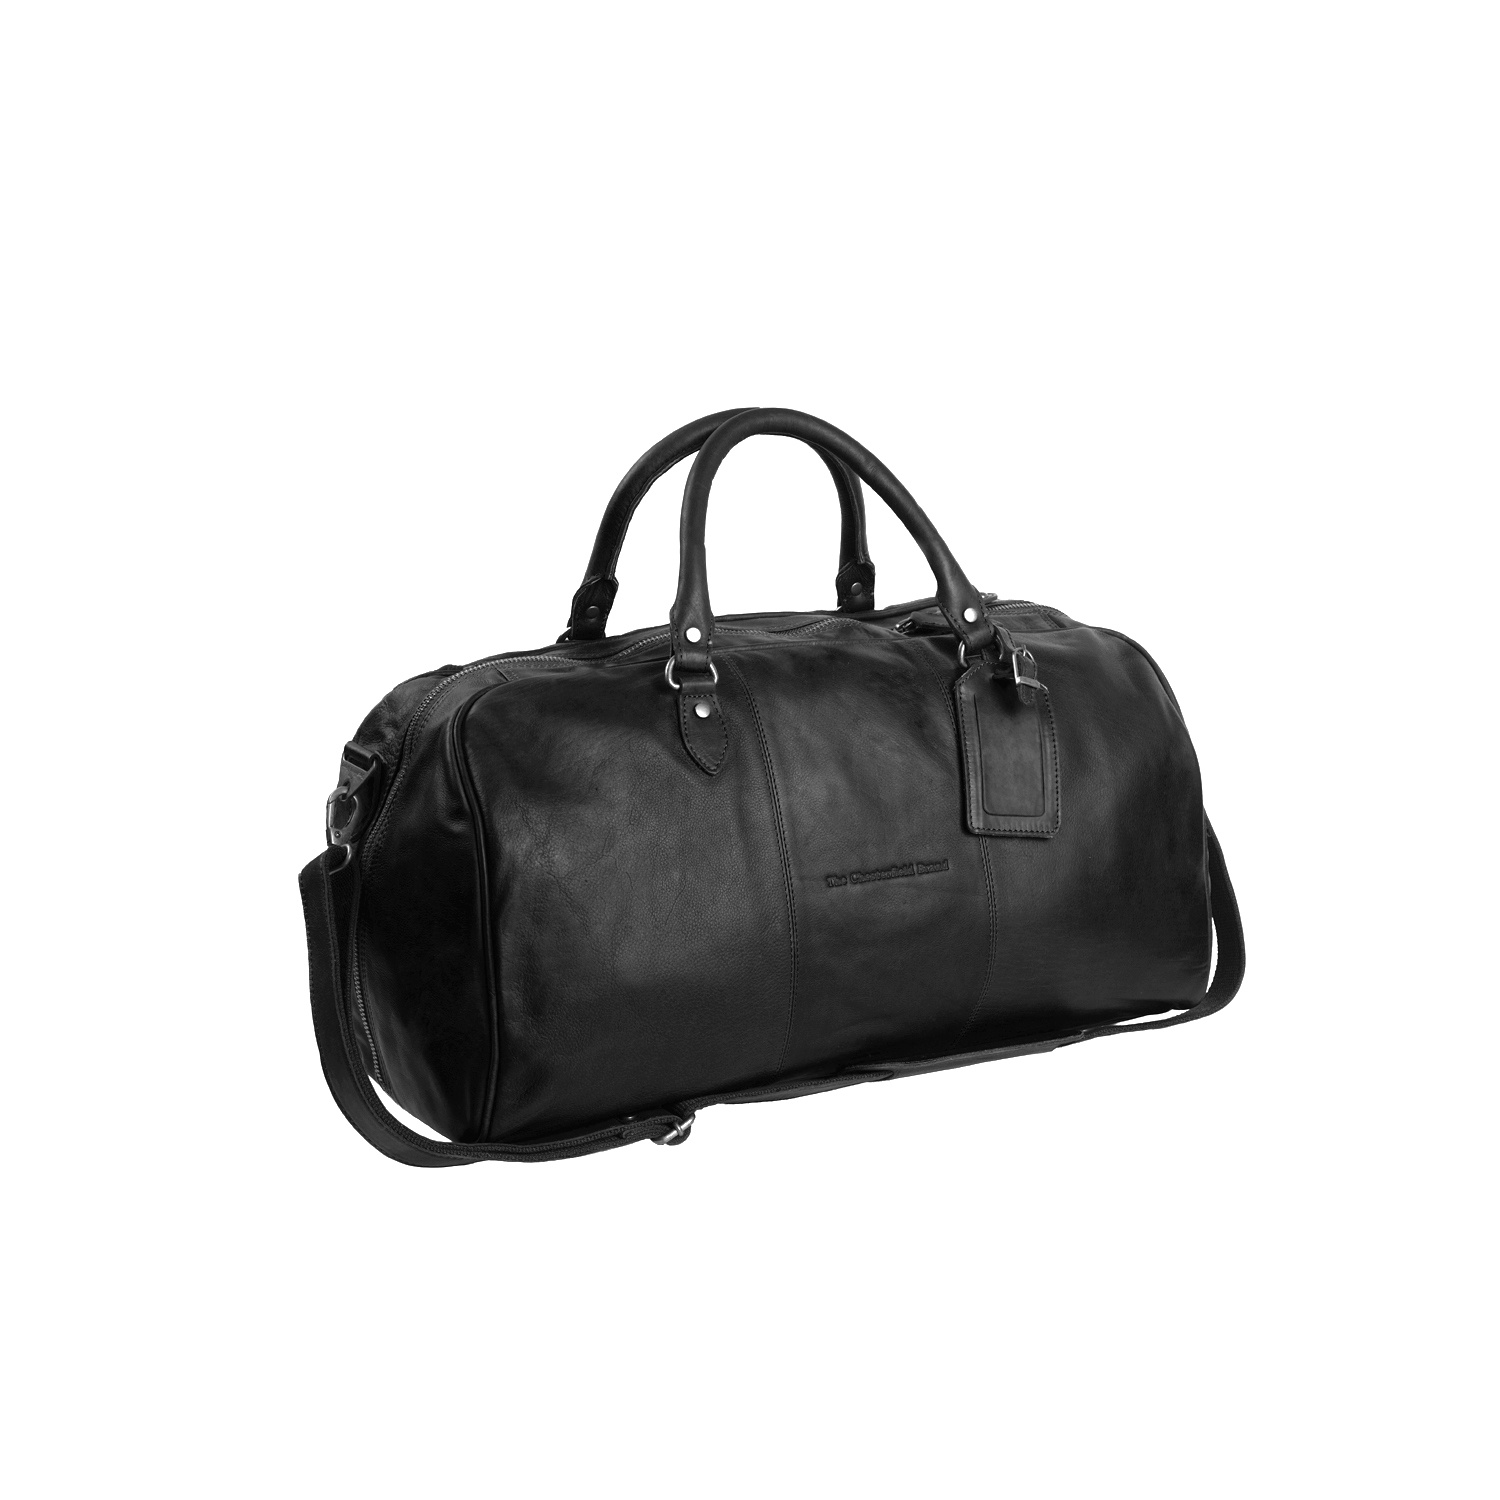 Chesterfield Travelbag 'William' C20.0004 Black